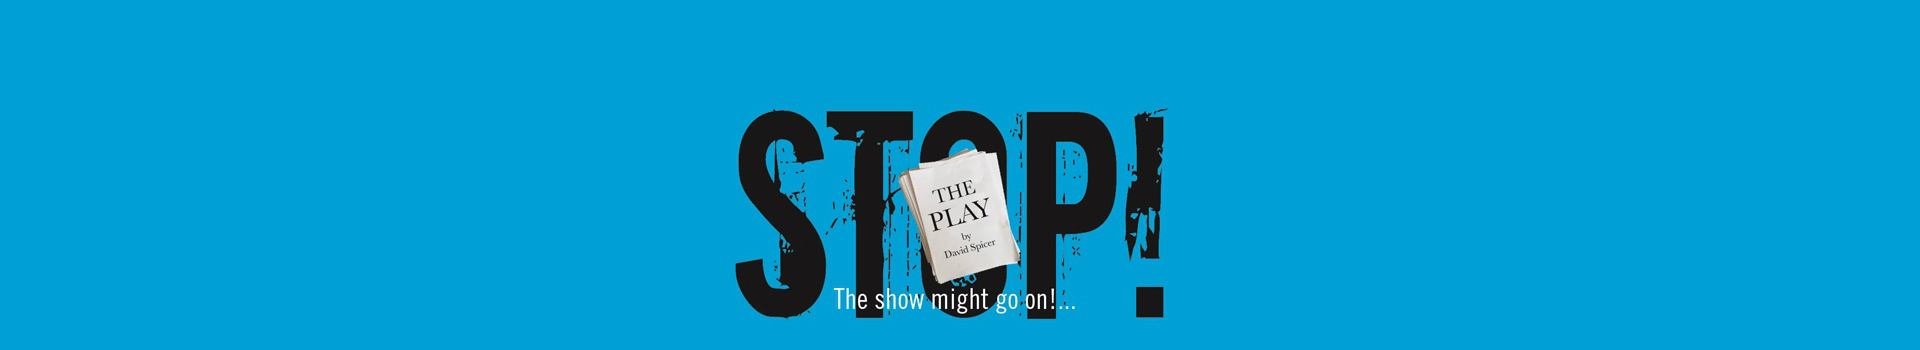 Stop! The Play tickets London